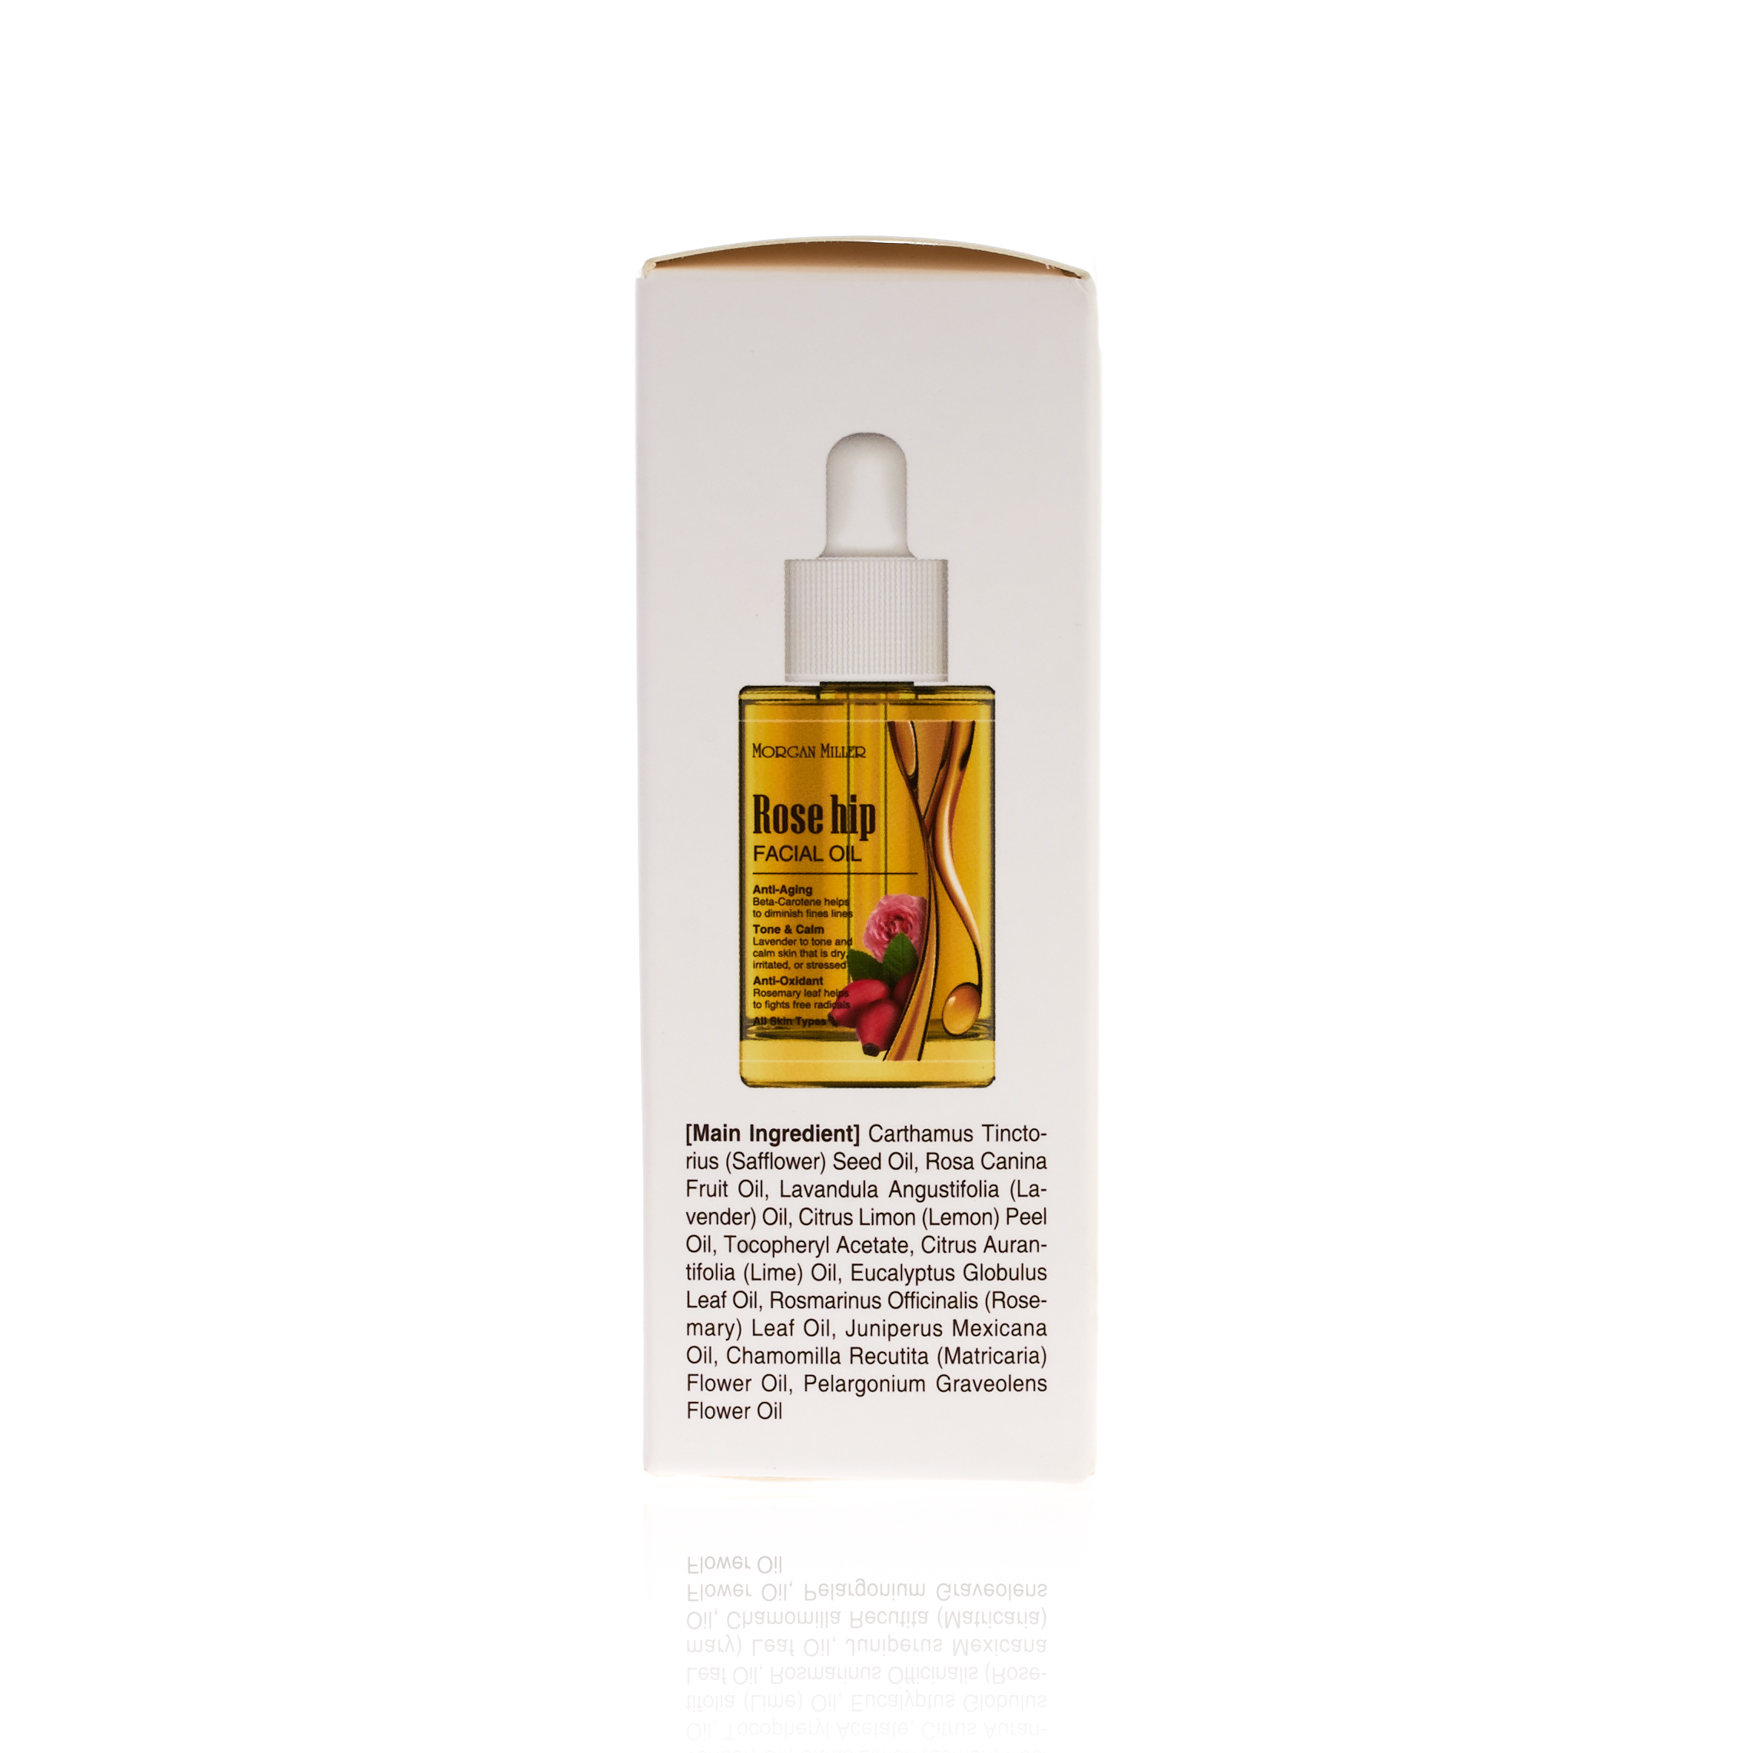 Morgan Miller Rose Hip Facial Oil packaging